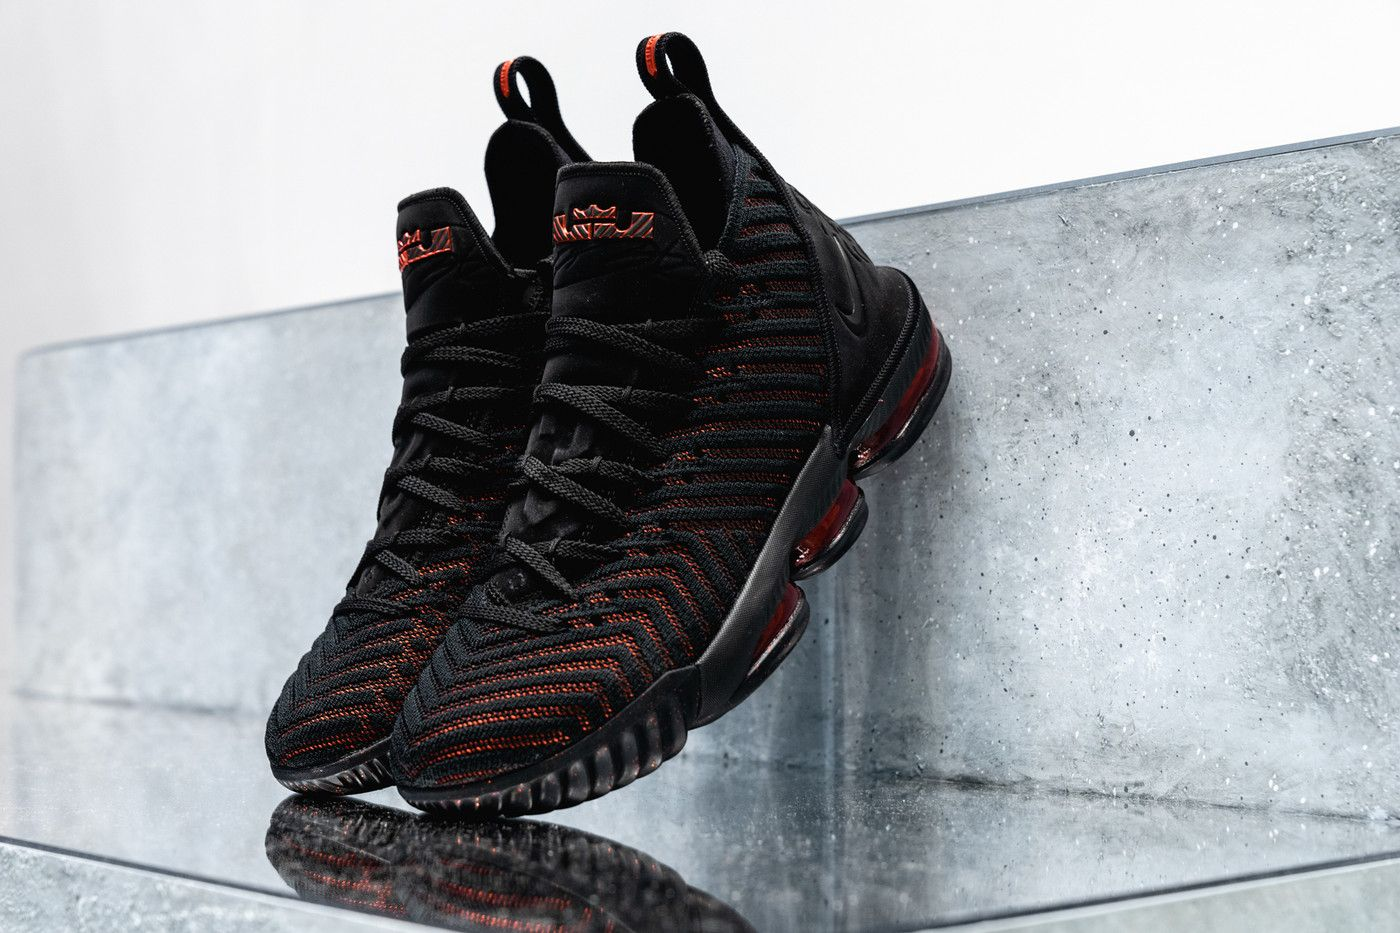 promo code 1ad43 502f3 nike lebron 16 nike basketball lebron james footwear black red 2018 los  angeles lakers nba